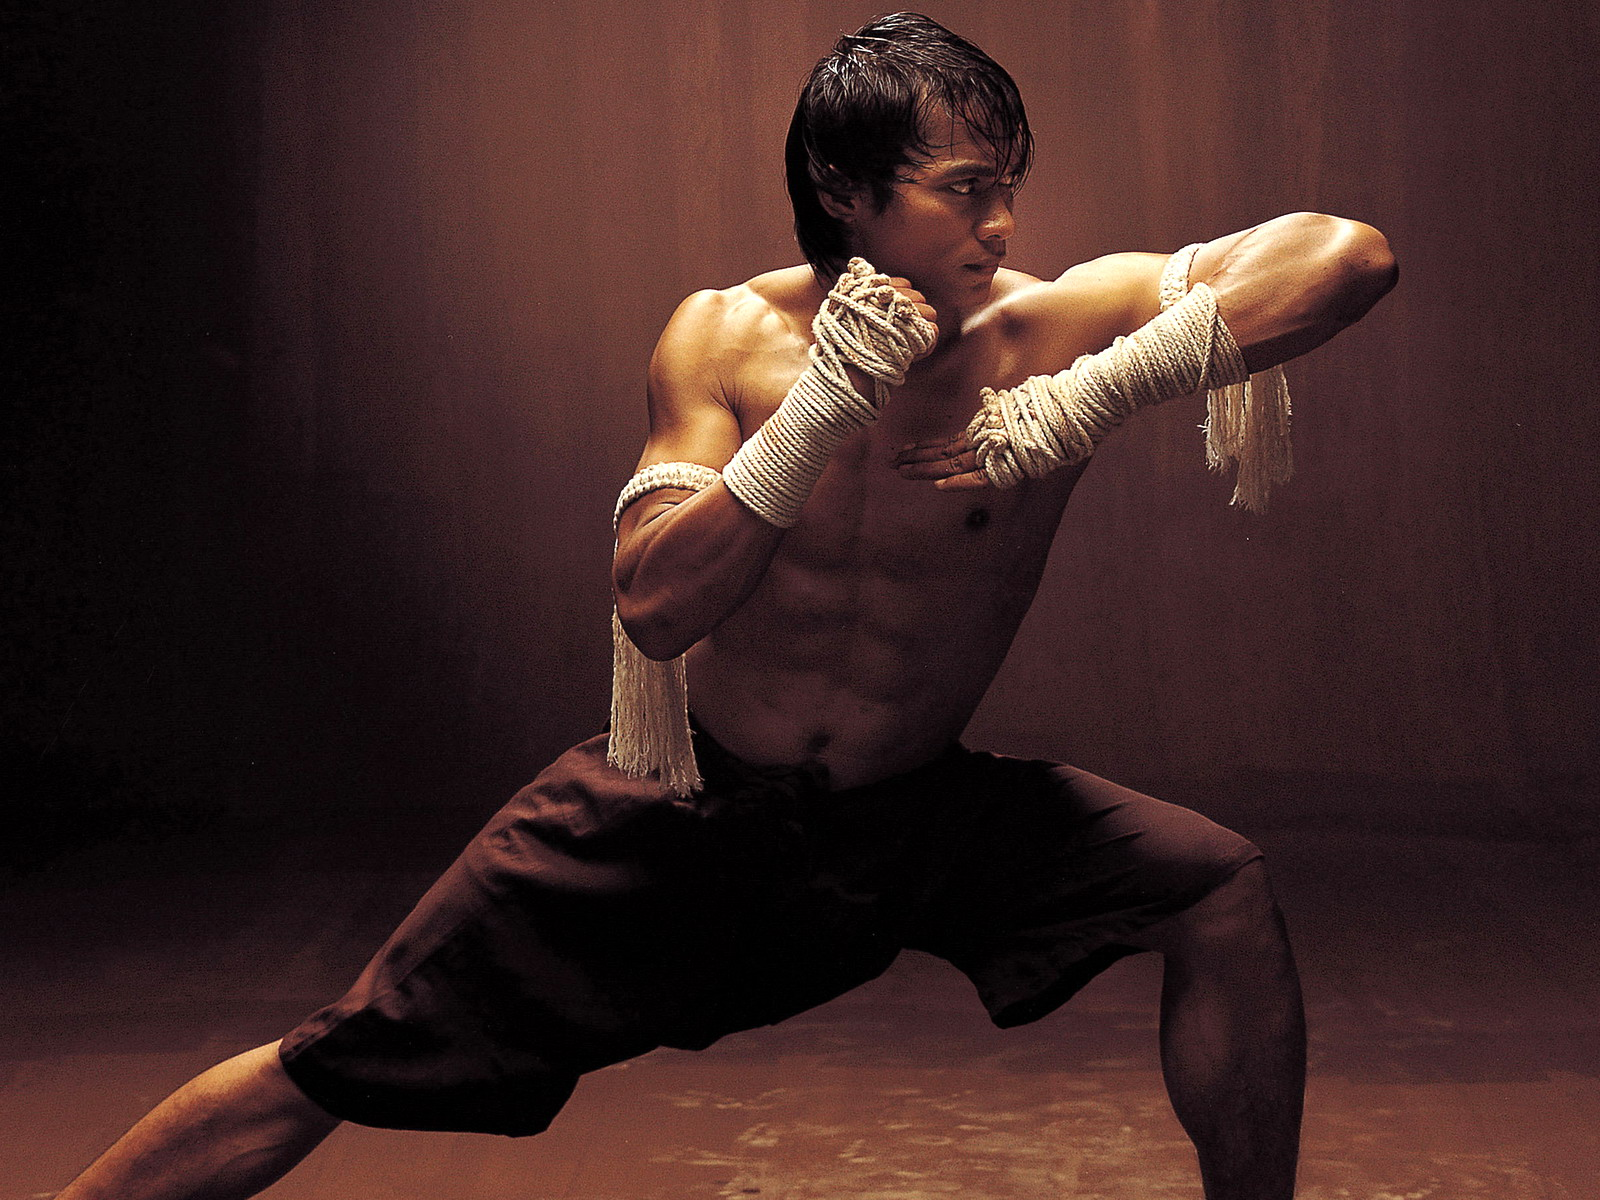 mixed martial arts vs traditional martial arts essay Karate is an individual japanese martial art form, whereas, martial arts in general comprises of all the forms of martial art and combat sports which have origins from china, japan and korea in simple terms, karate is one of the forms of martial arts.